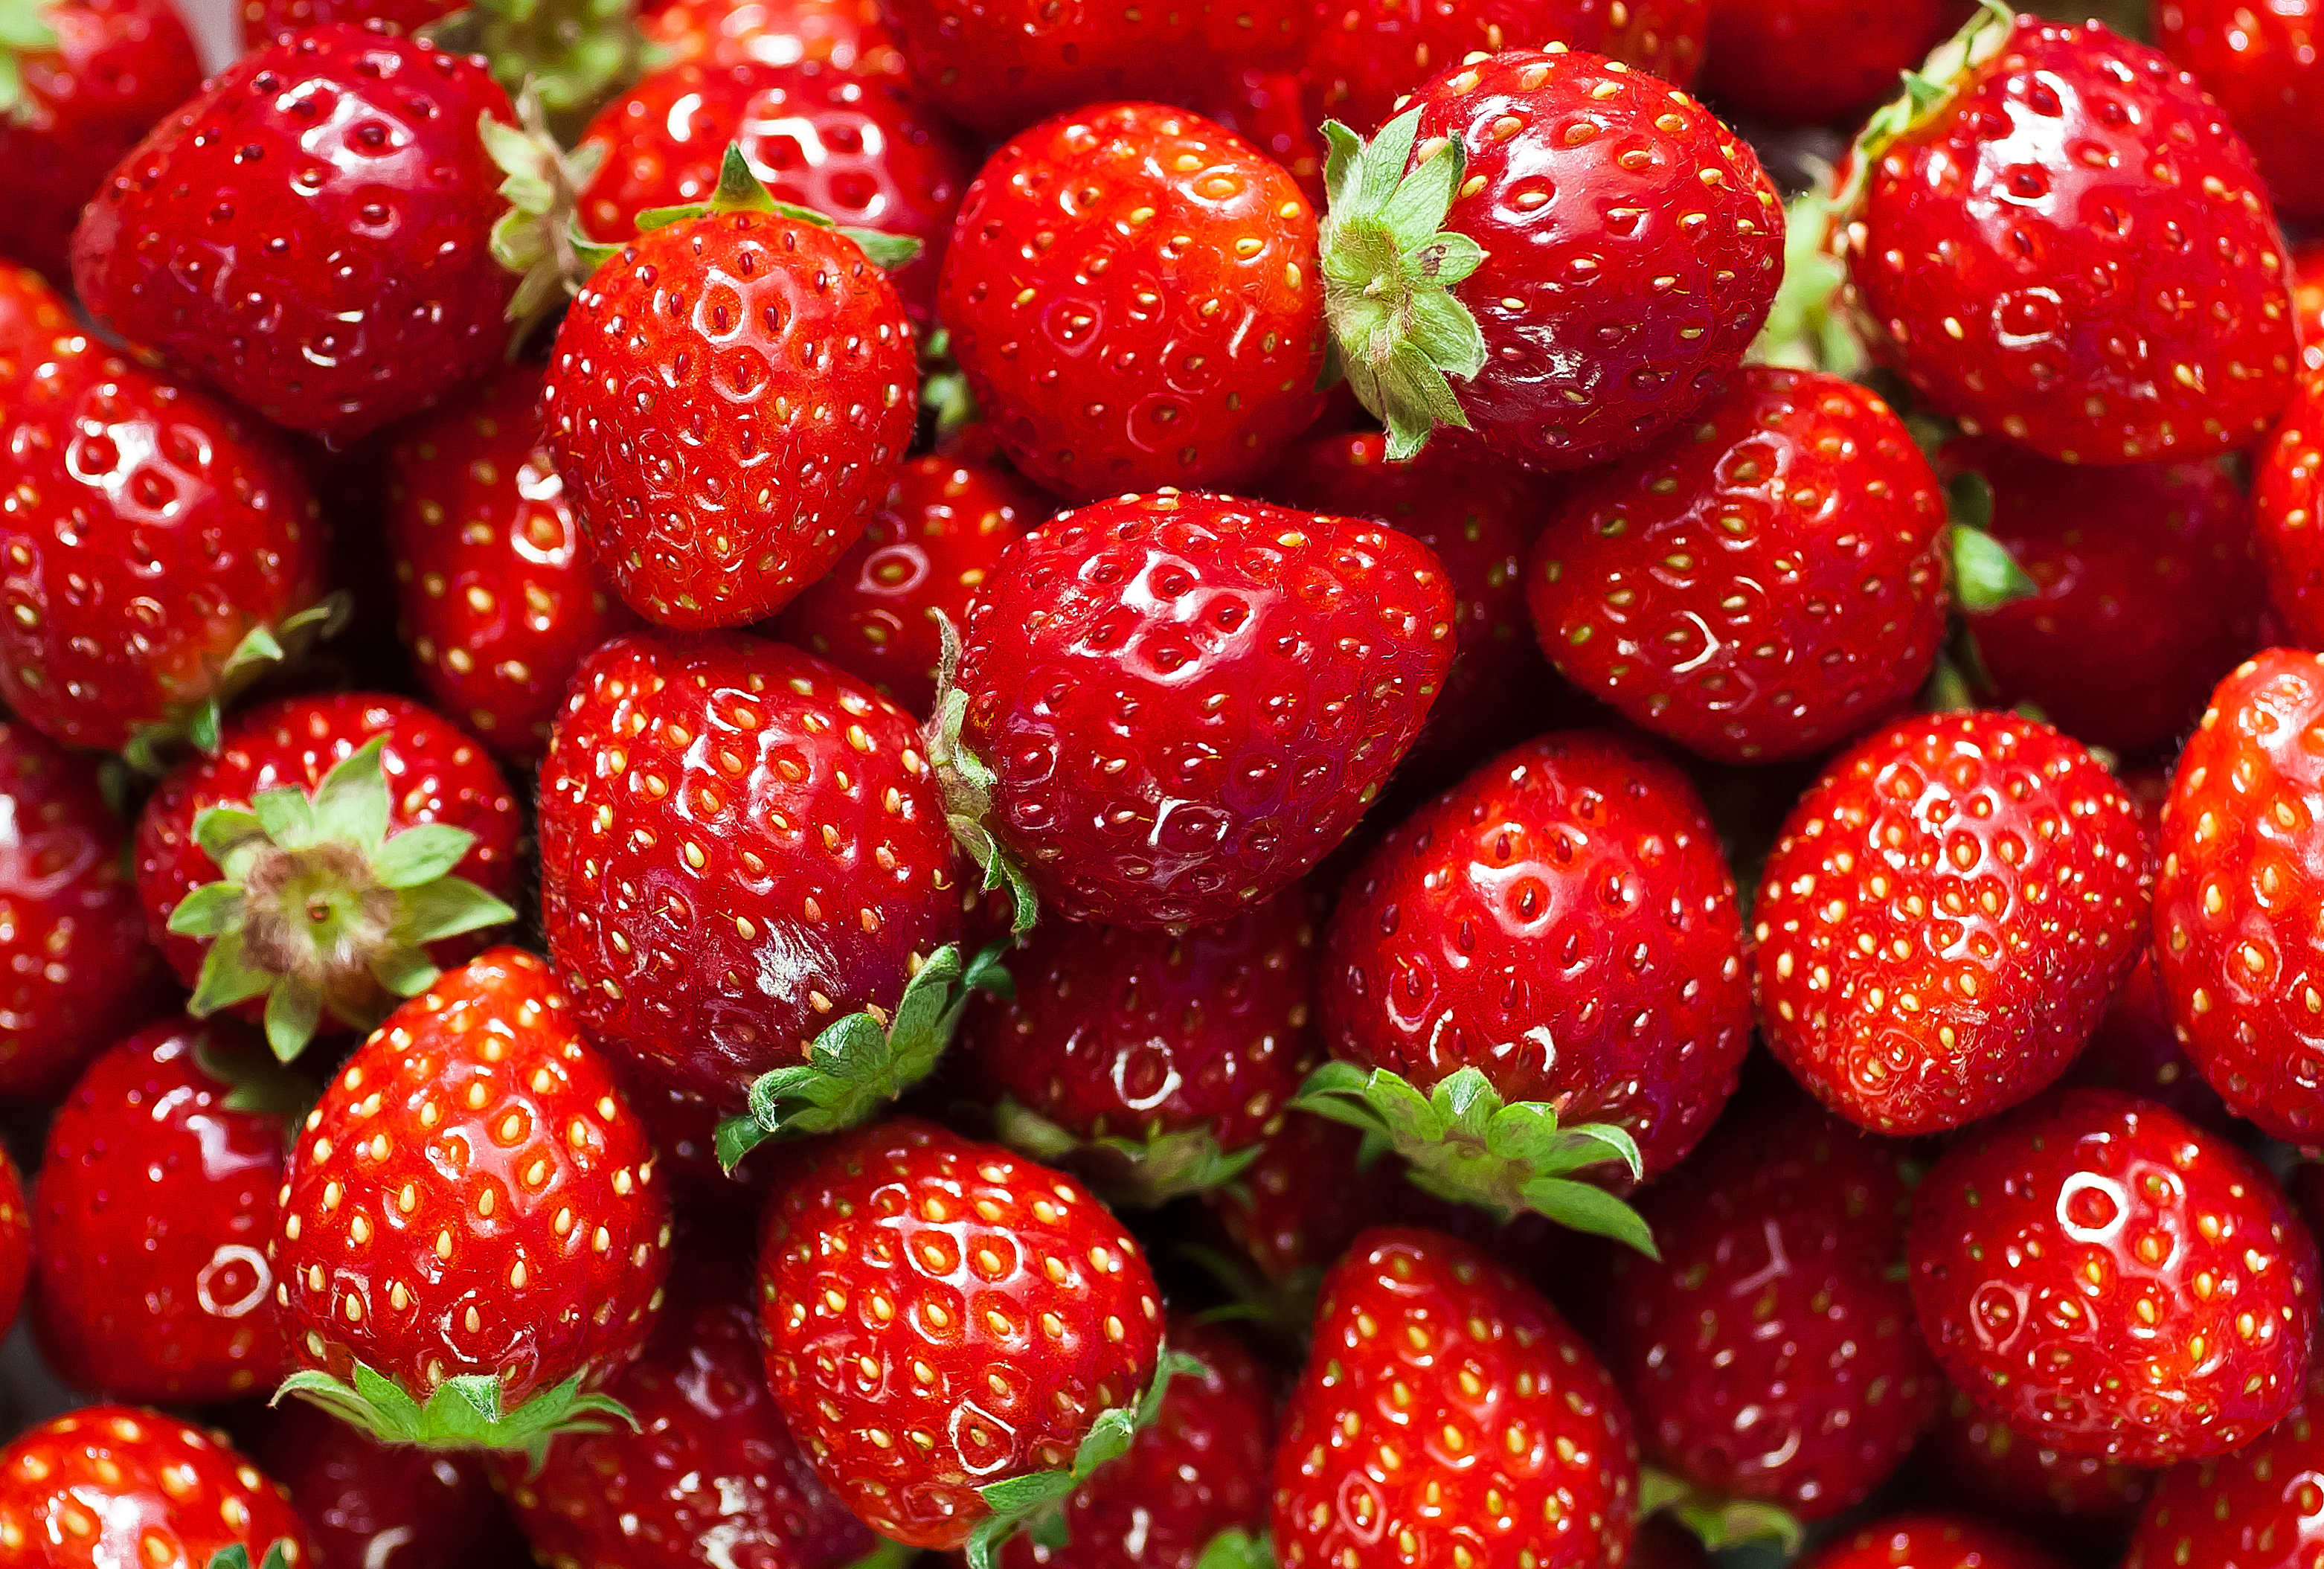 Some tasty strawberries may arrive in May, but June has some especially delicious varieties.